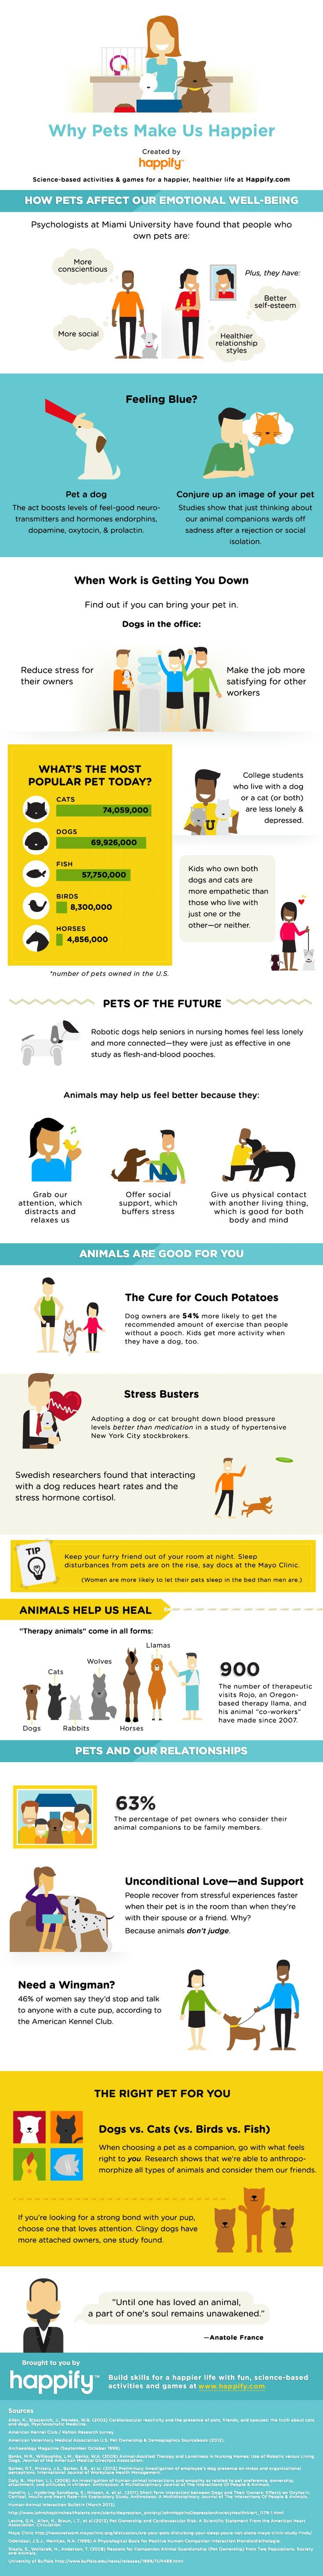 It's no secret that humans love having pets of all shapes and sizes, and turn to them for comfort and entertainment. This infographic shares why pets make us happier.